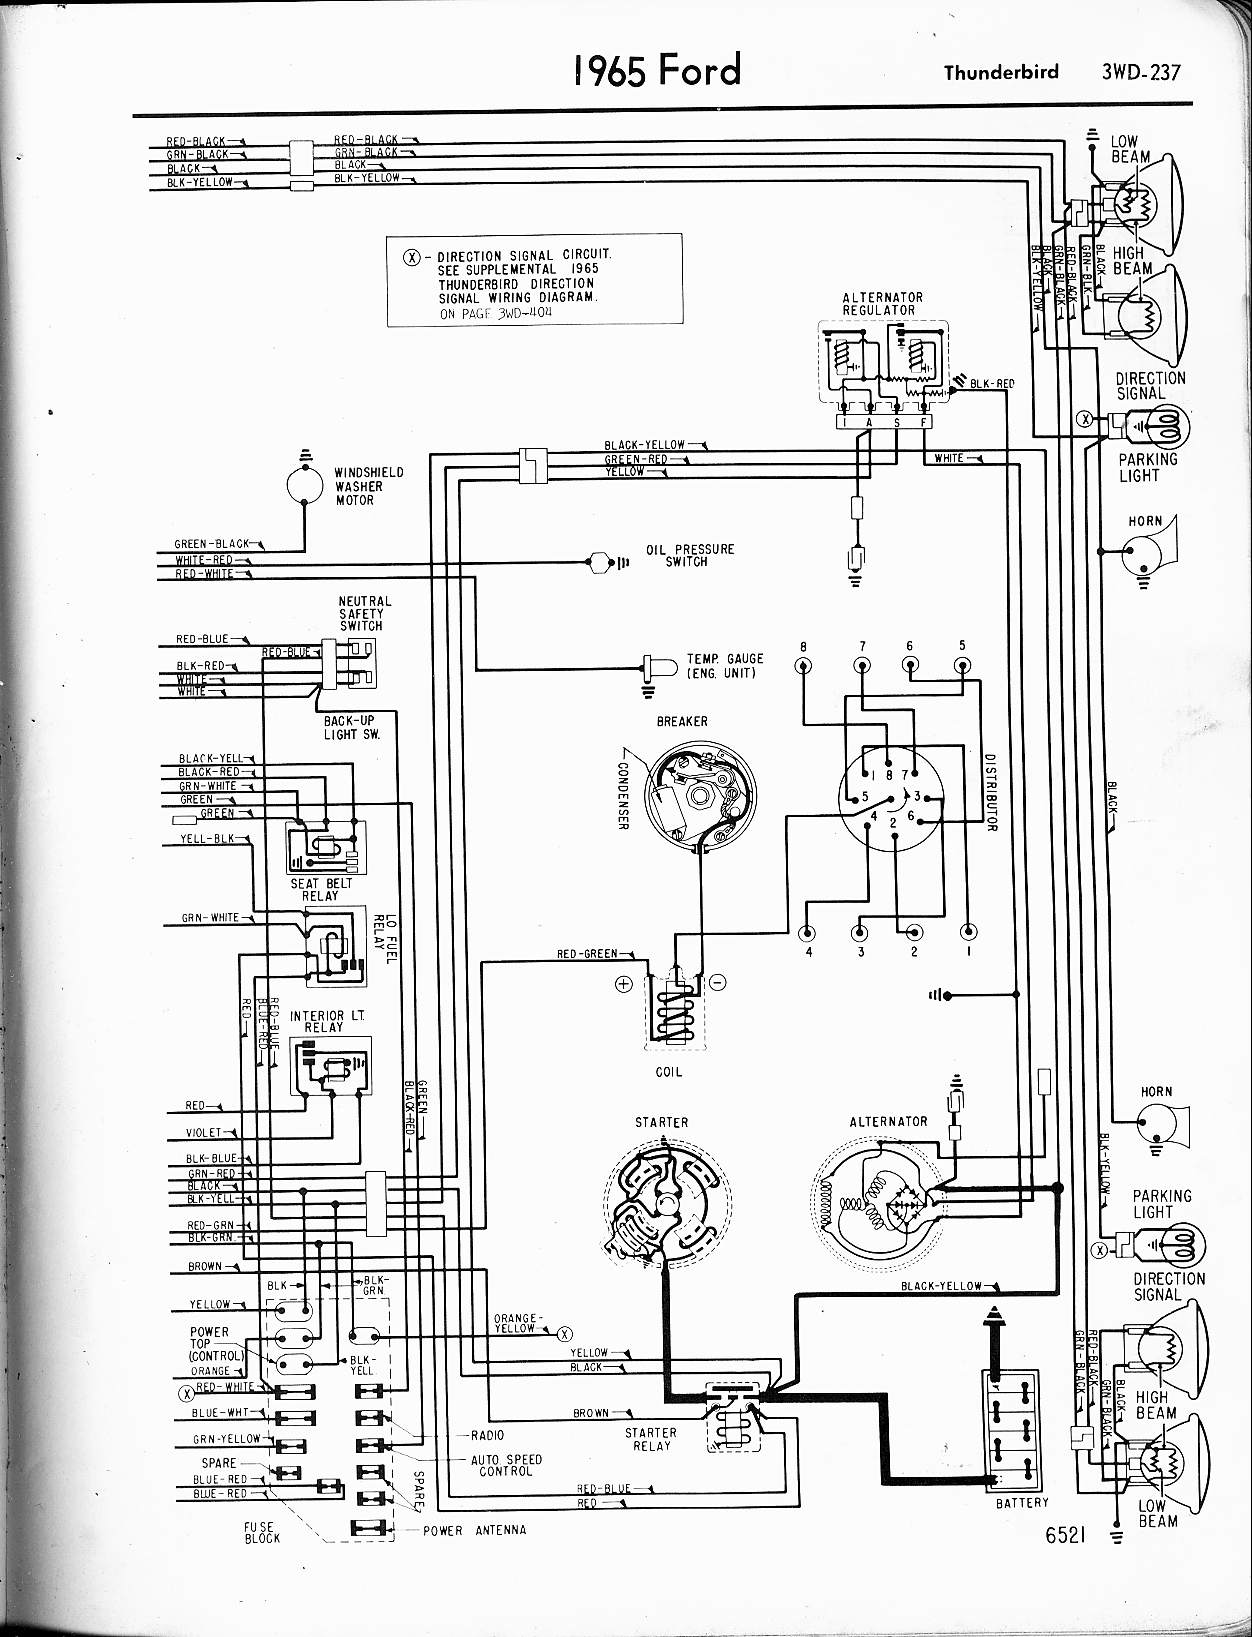 Wondrous 1964 Thunderbird Wiring Diagram Car Wiring Diagram Wiring Cloud Staixuggs Outletorg